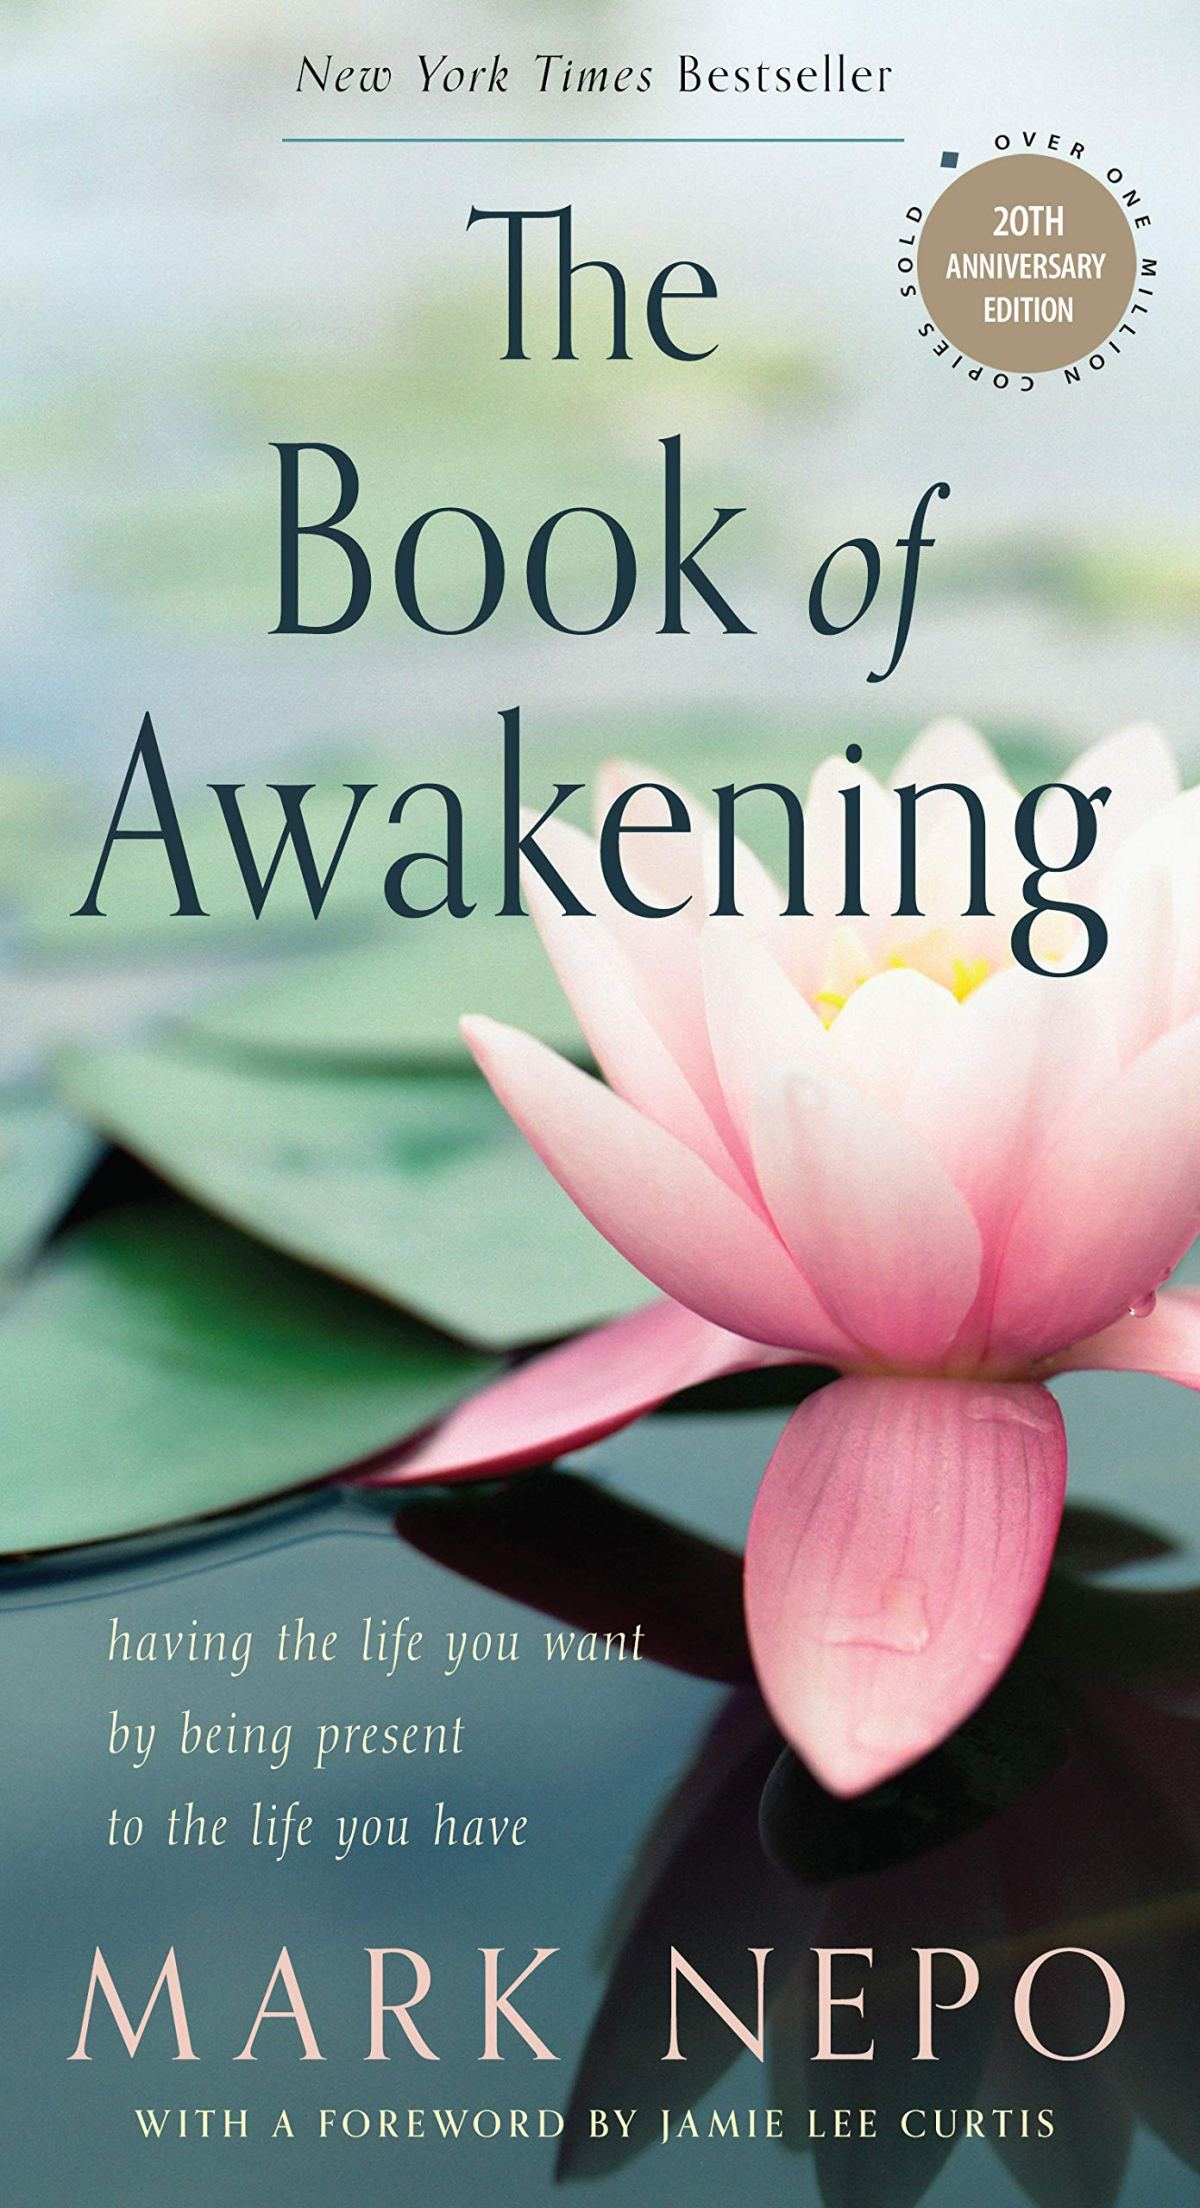 The Book of Awakening: Having the Life You Want by Being Present to the  Life You Have (20th Anniversary Edition): Nepo, Mark, Curtis, Jamie Lee:  9781590035009: Amazon.com: Books